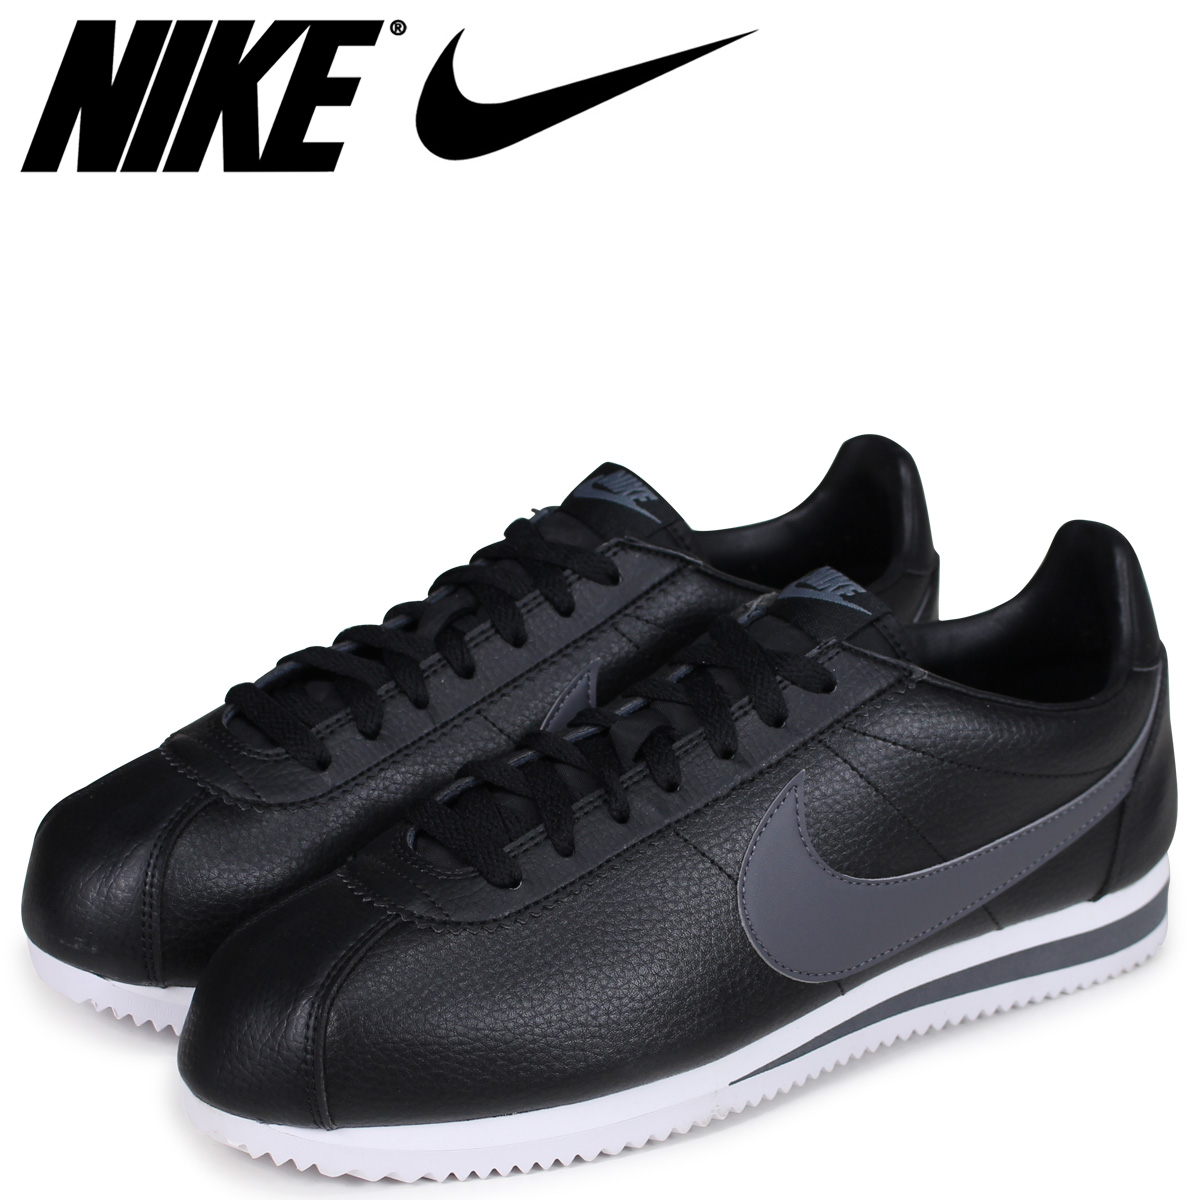 newest 90474 c8a6c  up to 2,016 yen OFF  ナイキコルテッツ NIKE sneakers men CLASSIC CORTEZ LEATHER  749,571-011 shoes black  load planned Shinnyu load in reservation product  ...